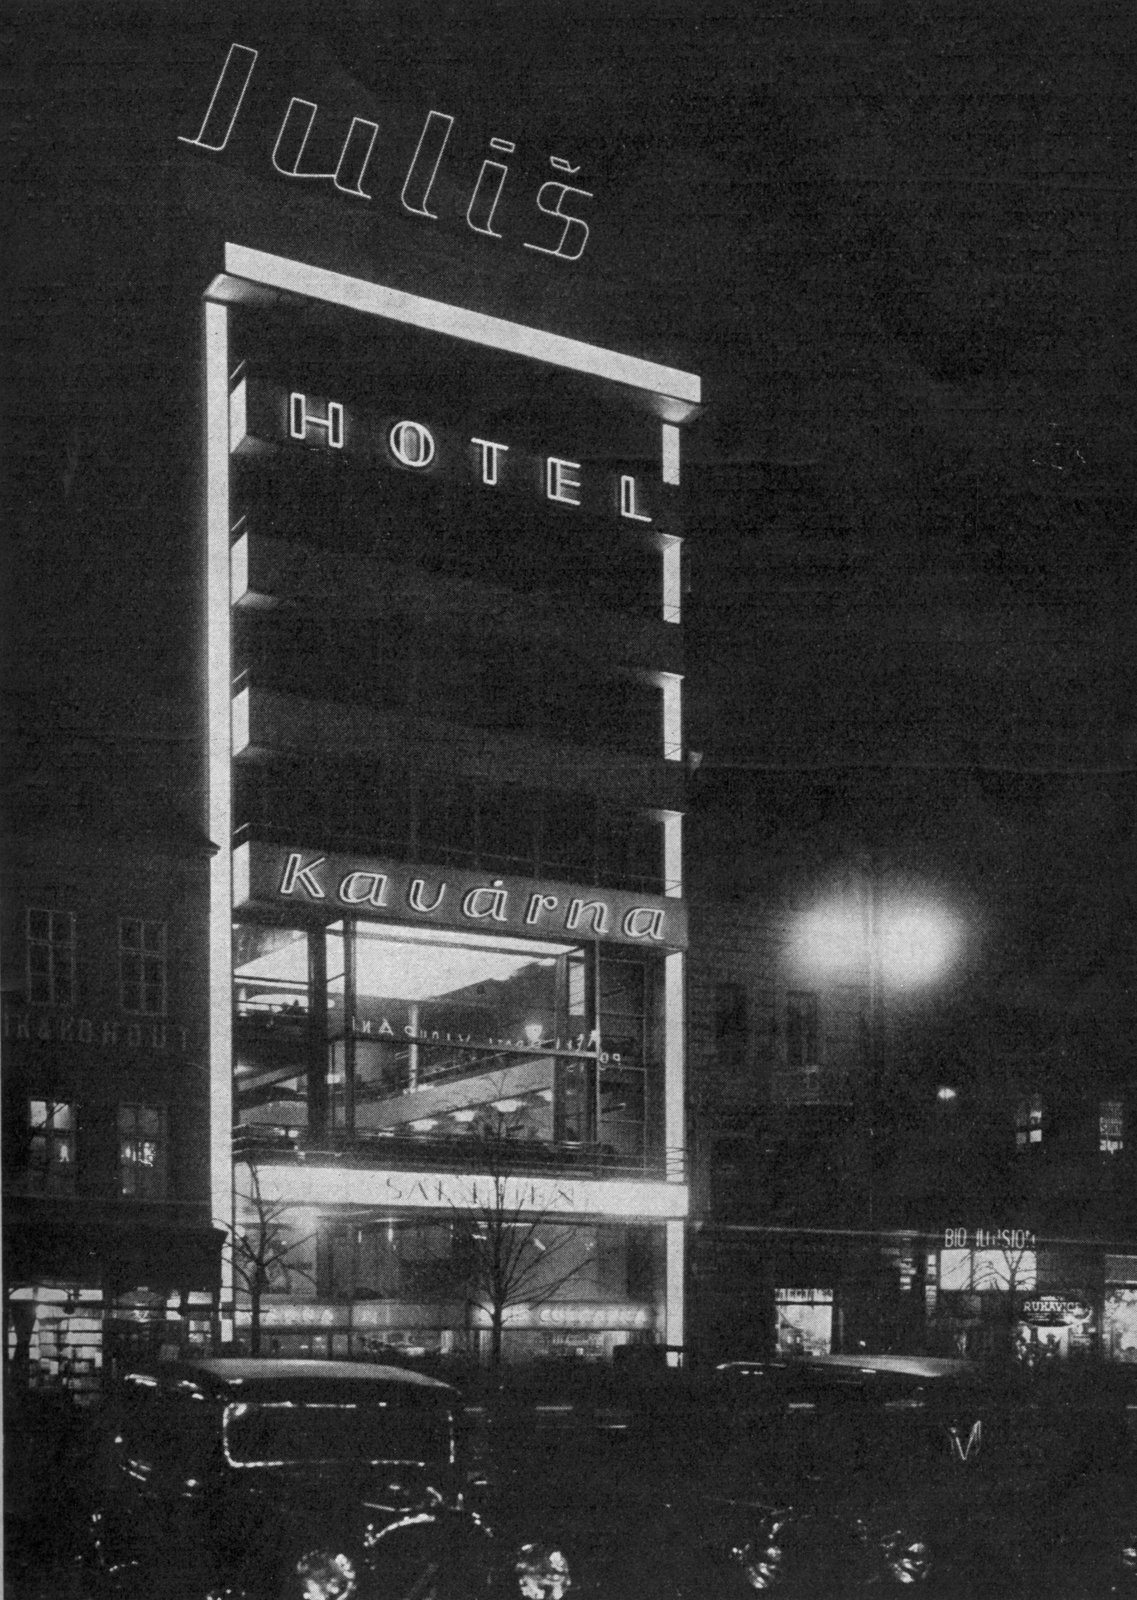 The Hotel Julis.  Photo 5 of 7 in Exhibit Examines Legacy of Functionalist Architecture in Prague